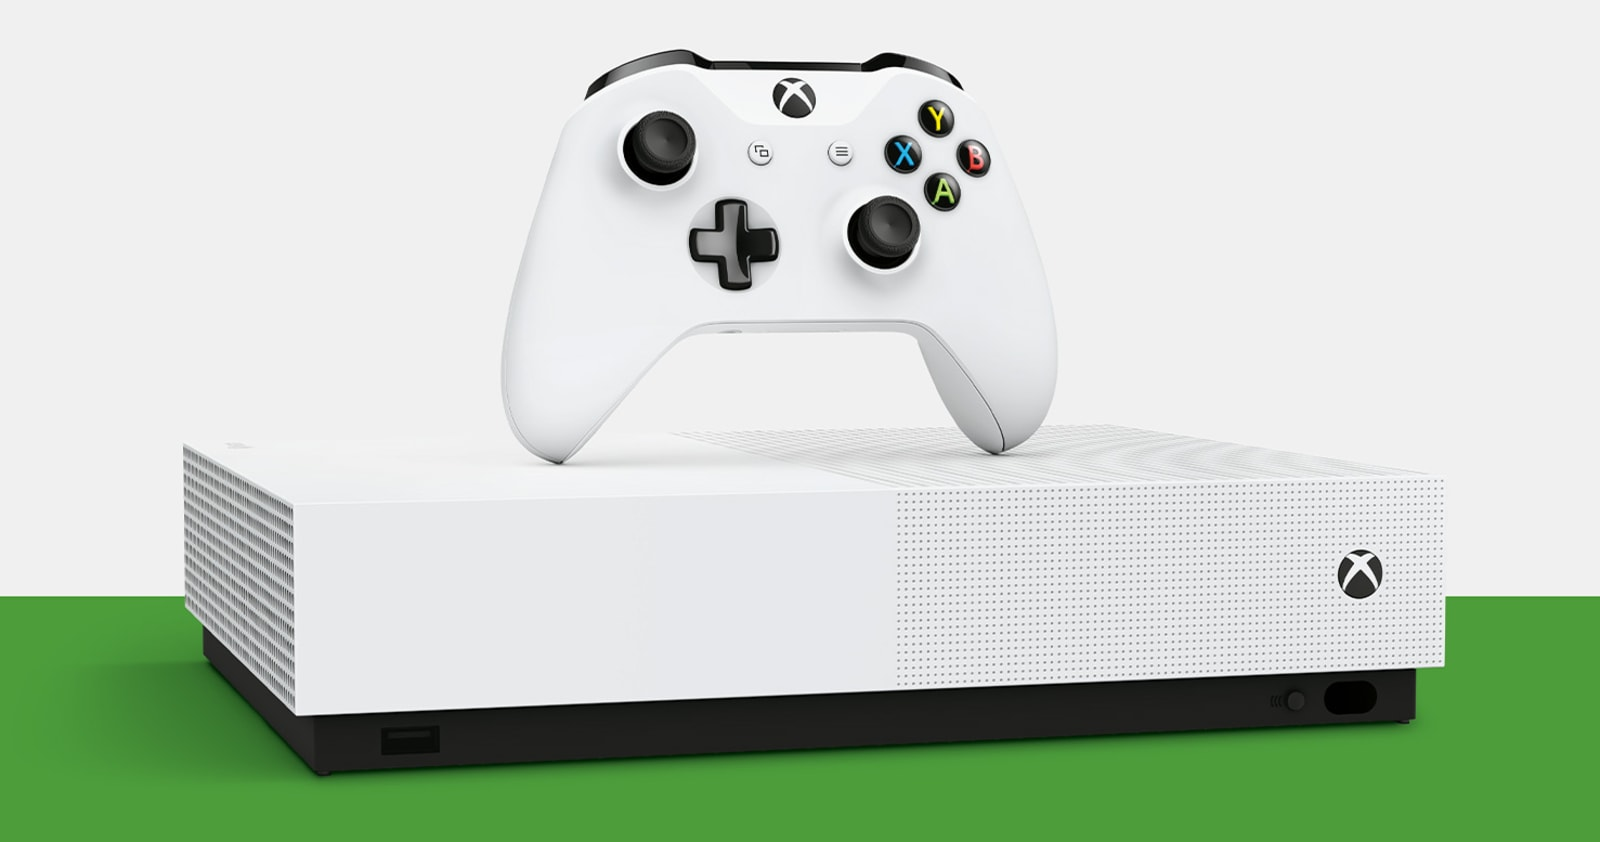 Xbox's biggest competitor isn't PlayStation